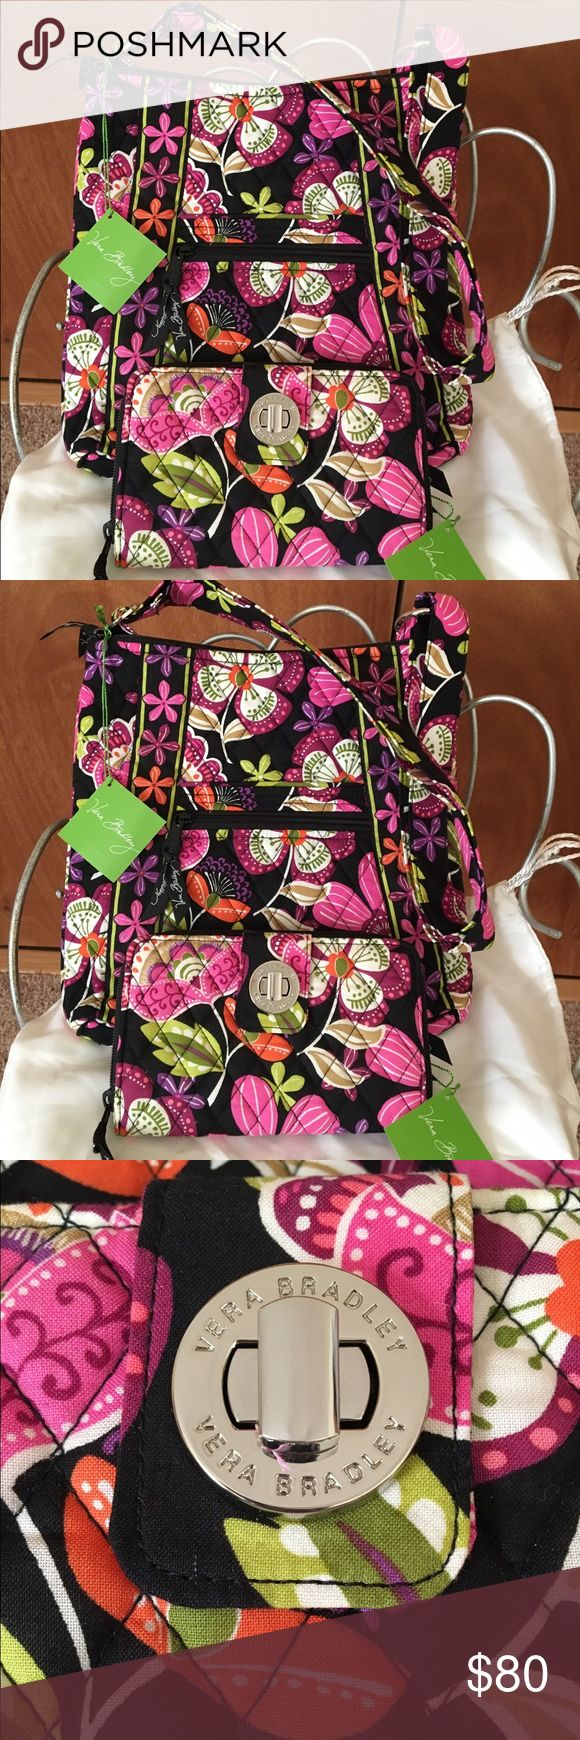 Authentic Vera Bradley hipster and wallet set💝 Very colorful set brand new with tags gorgeous set for any occasion bag is 11.5x11 with adjustable strap wallet is 8x5 😄💜🌷 Vera Bradley Bags Crossbody Bags